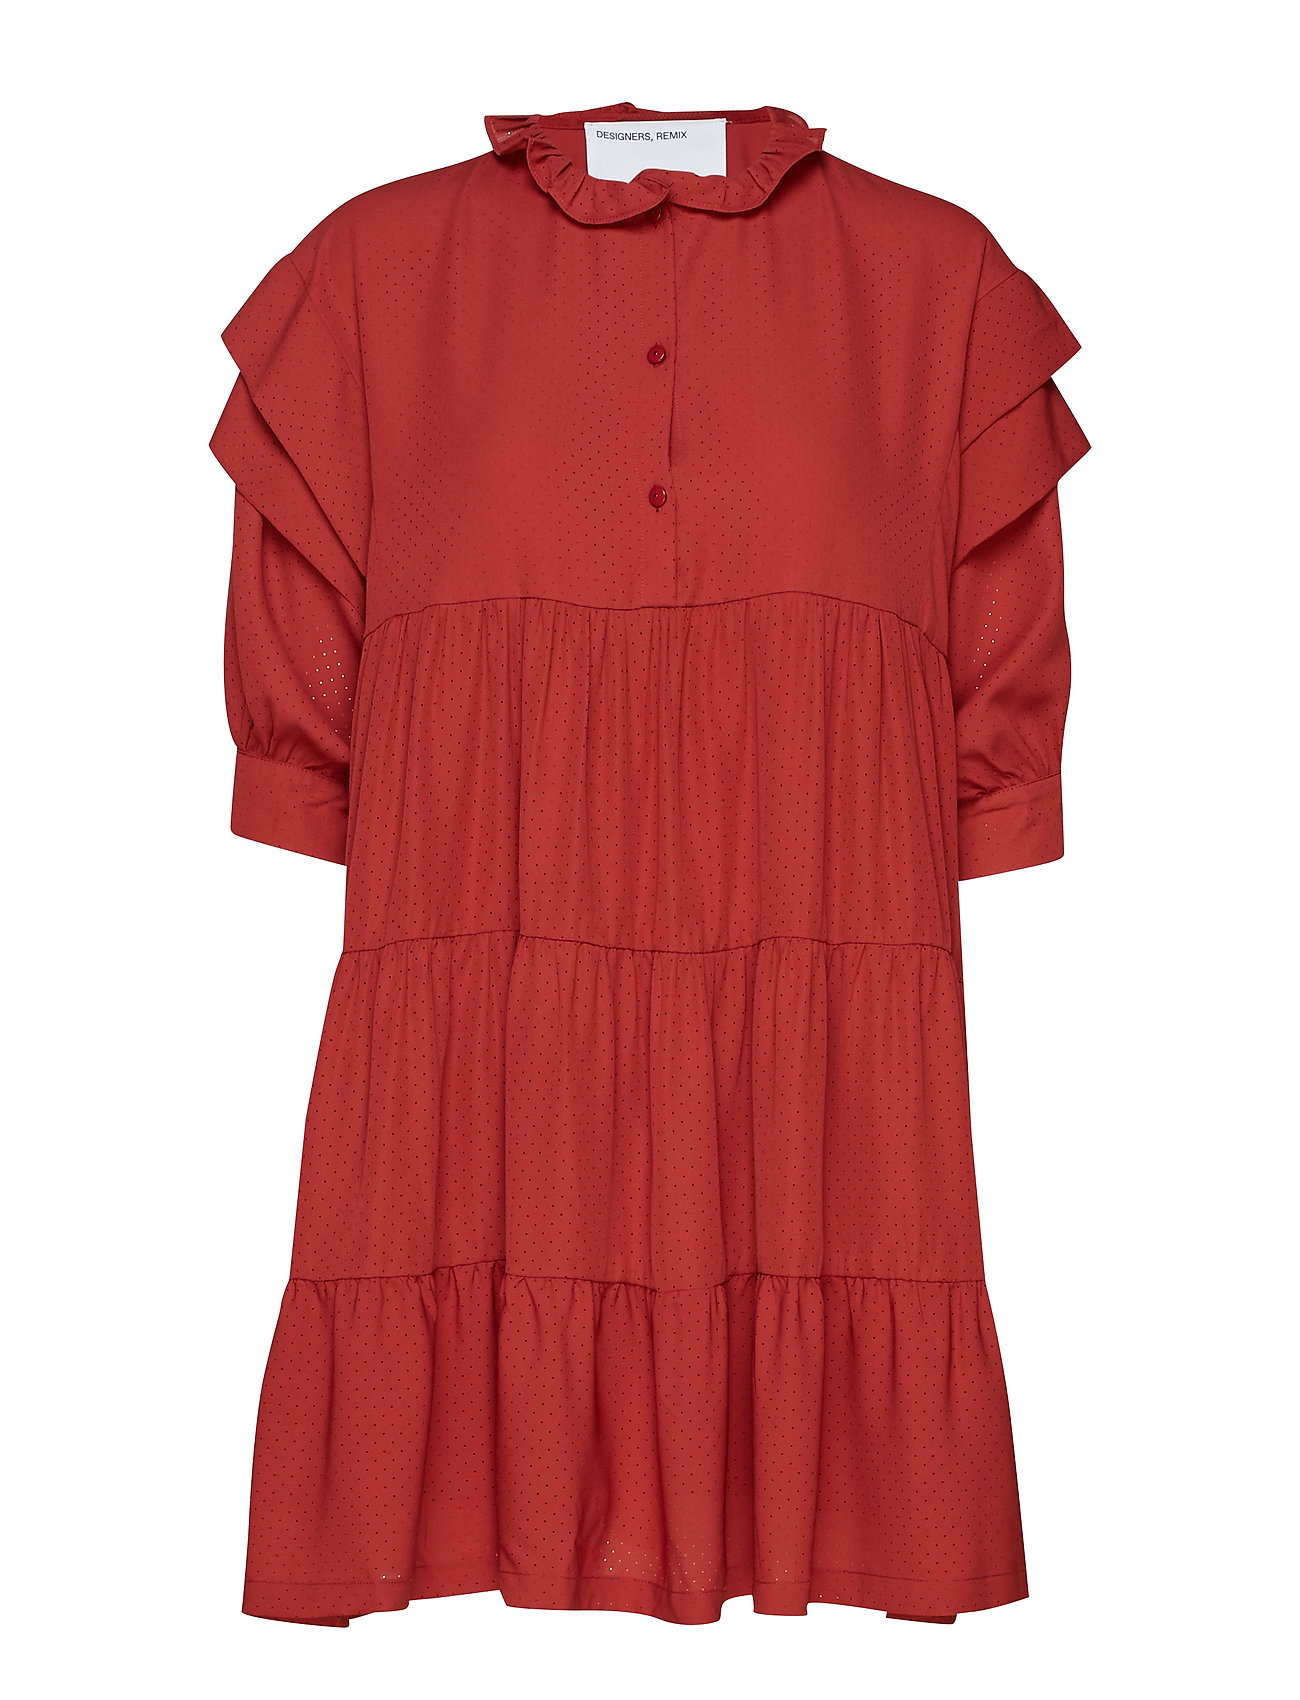 DESIGNERS, REMIX Byron Layered Dress - OX BLOOD